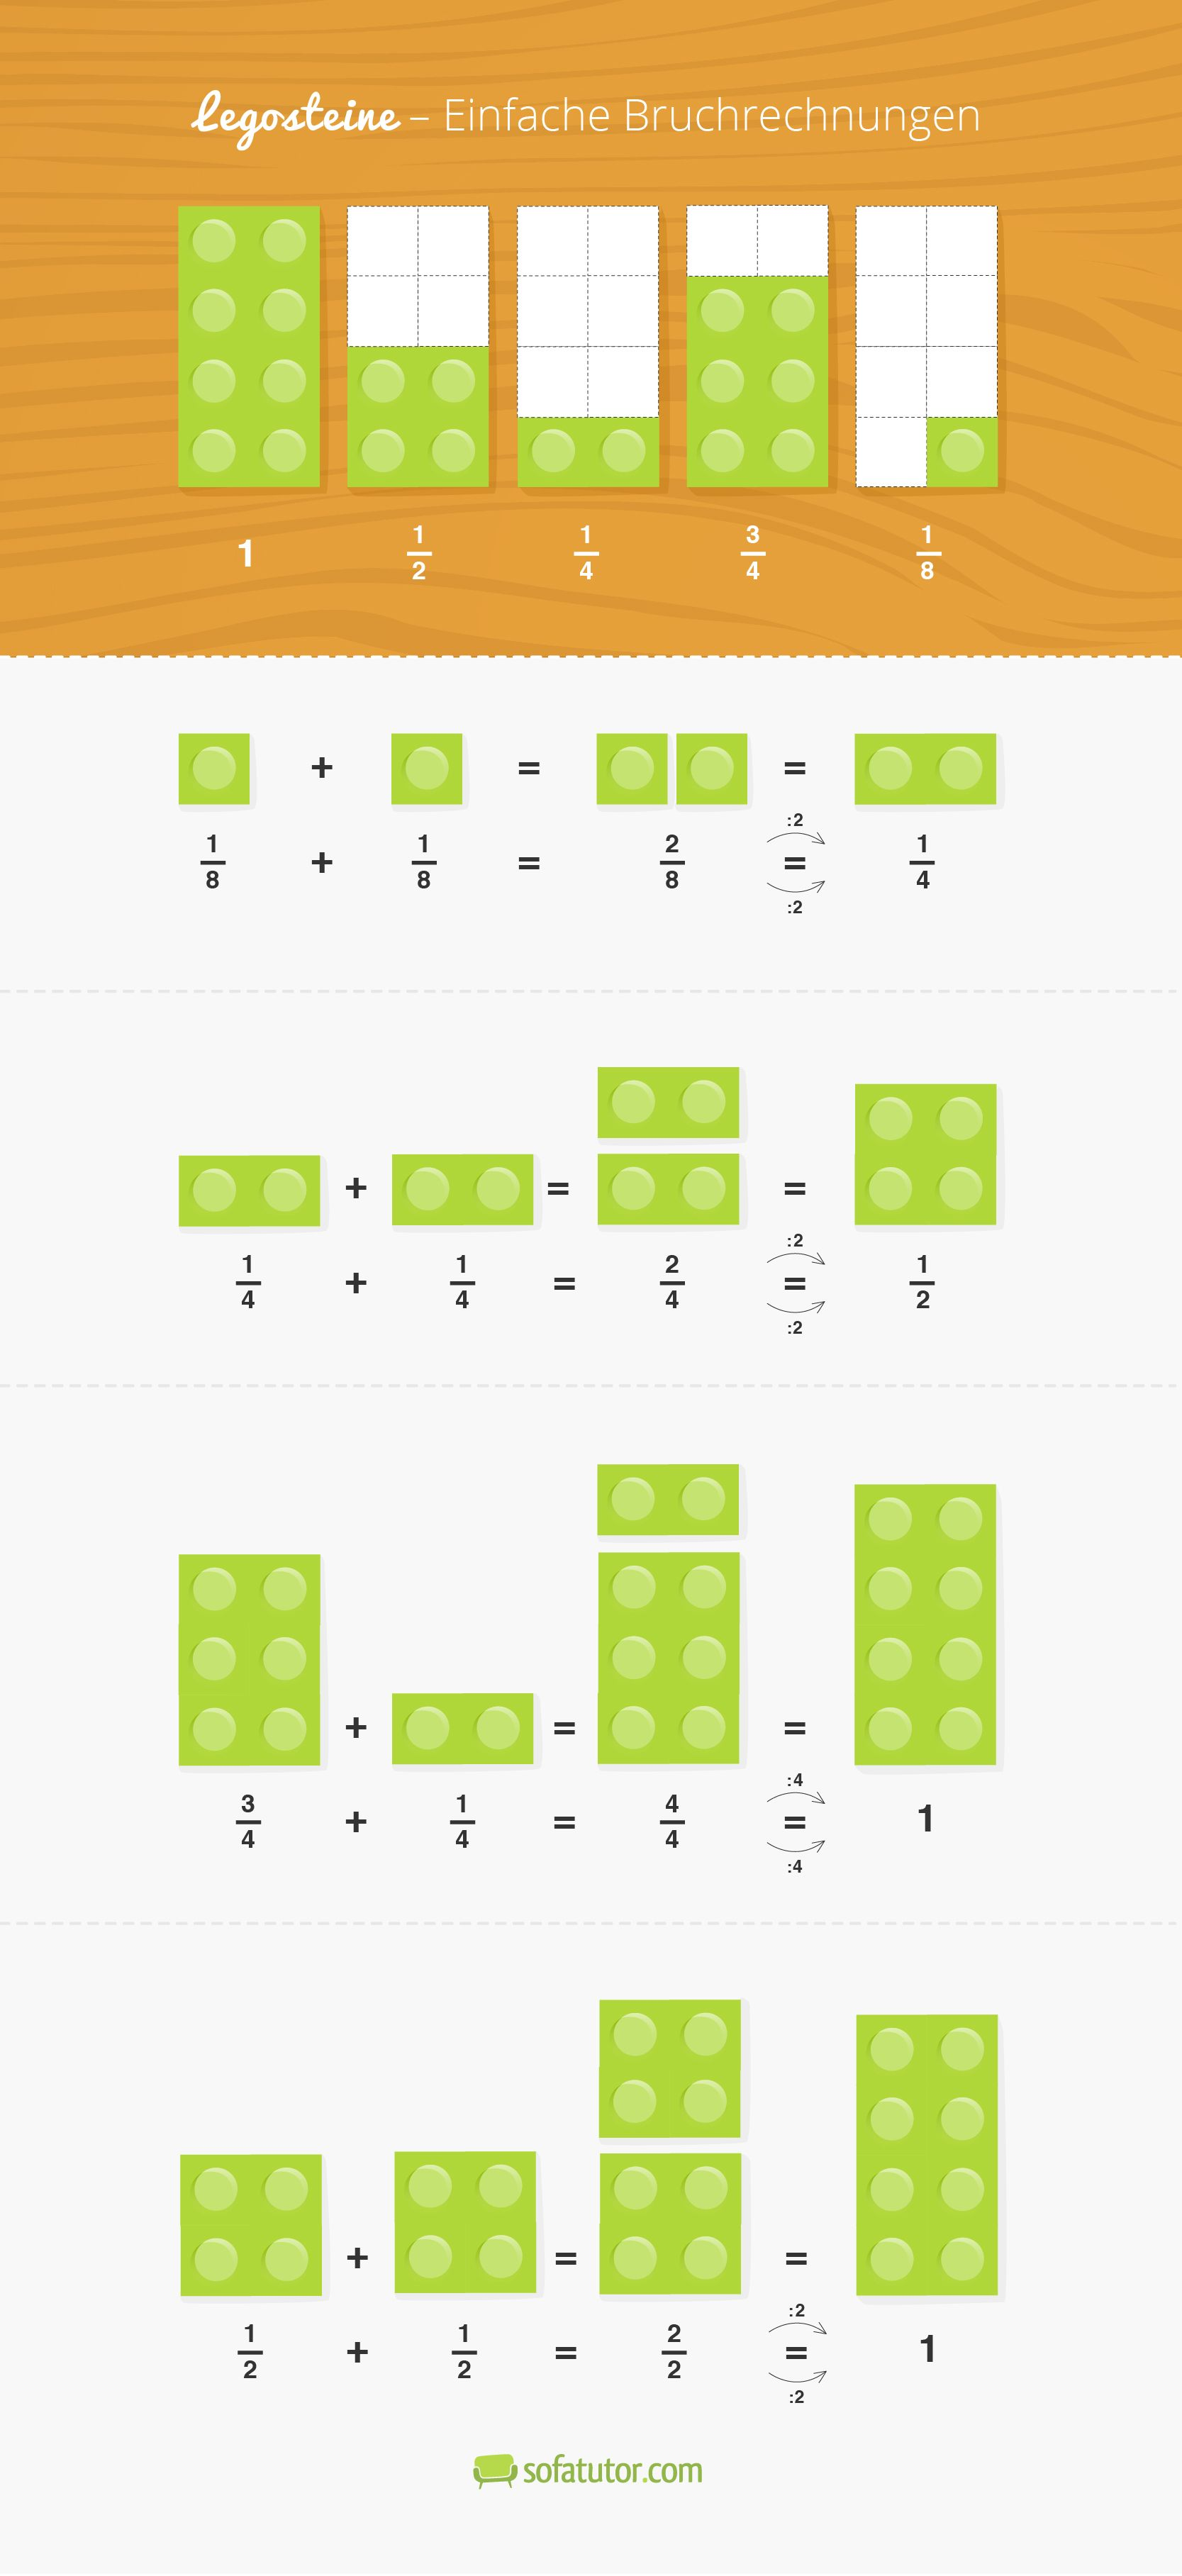 Pin by Ildikó Sajó on törtek | Pinterest | Math, Lego and School